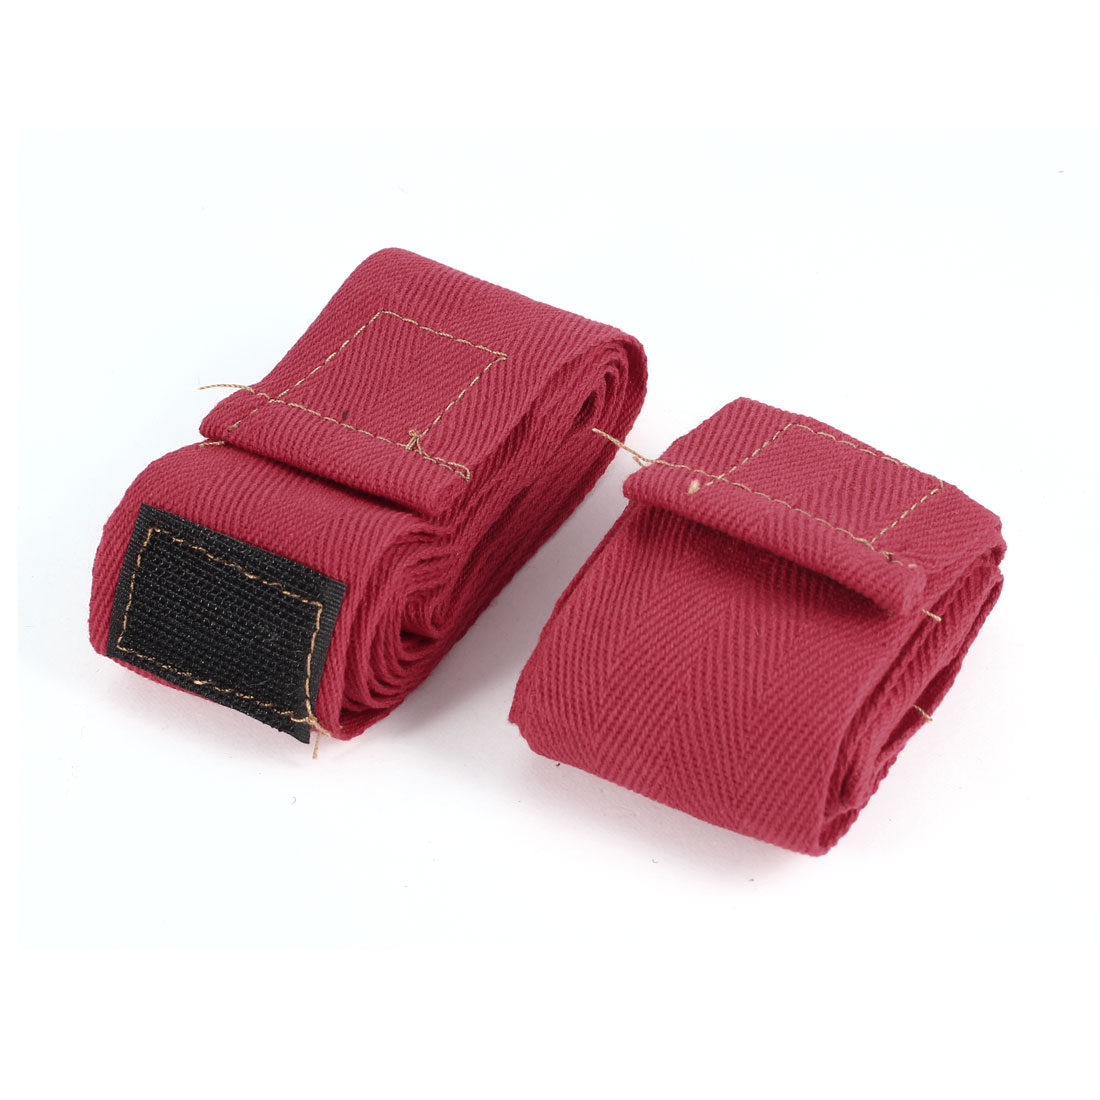 Pair Detachable Closure Red Boxing Hand Wraps Protectors 190cmx5cm